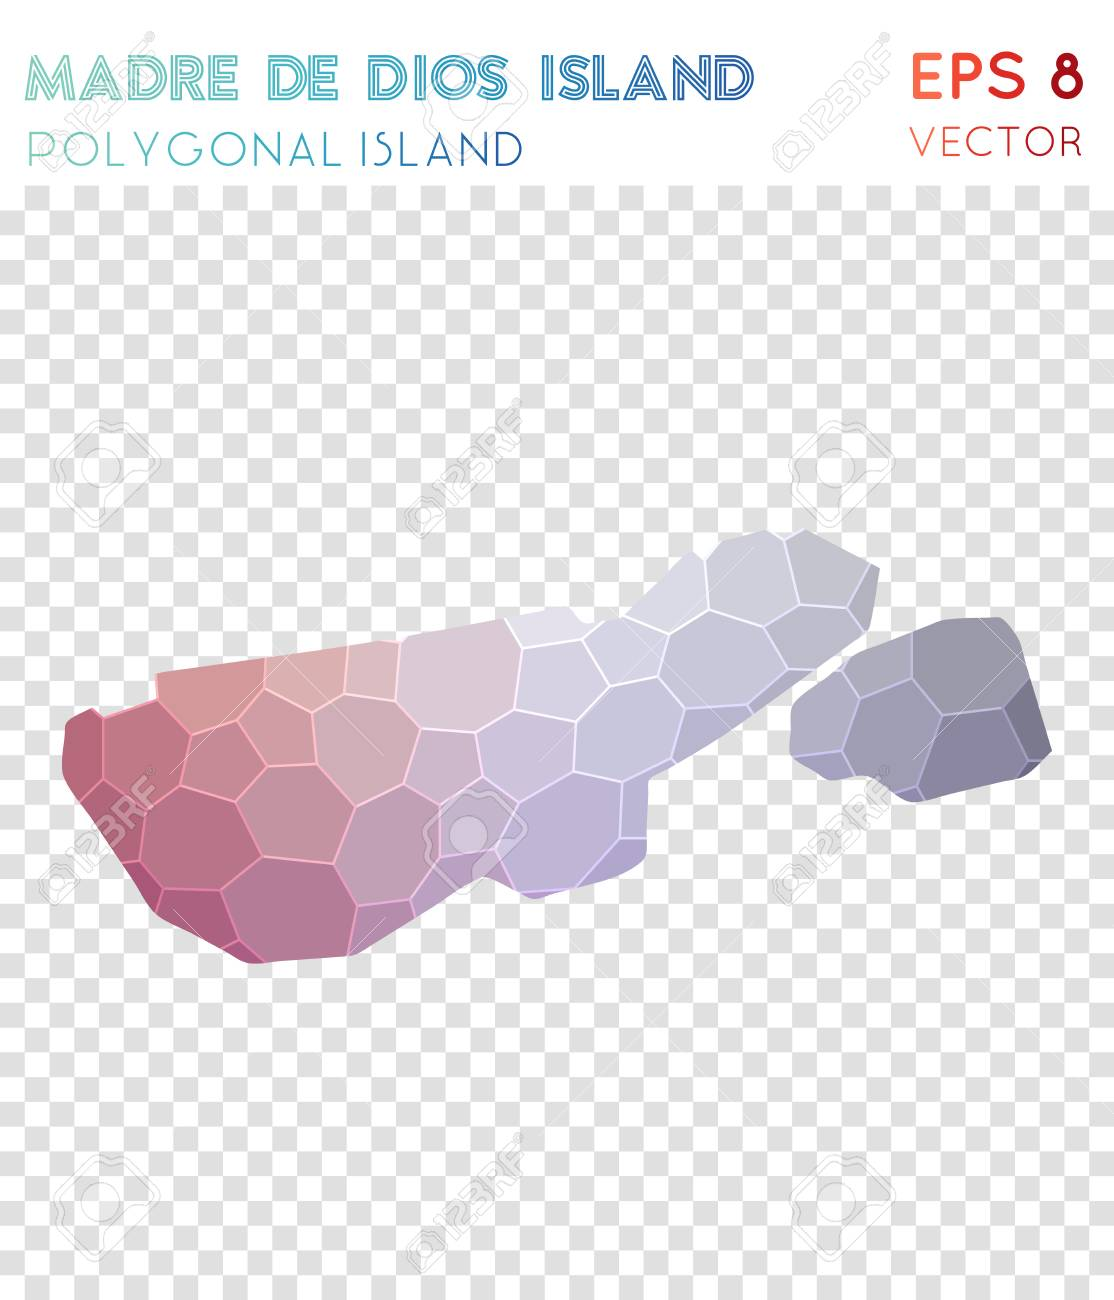 Madre De Dios Island Polygonal Map, Mosaic Style Island. Classy Low Poly  Style,